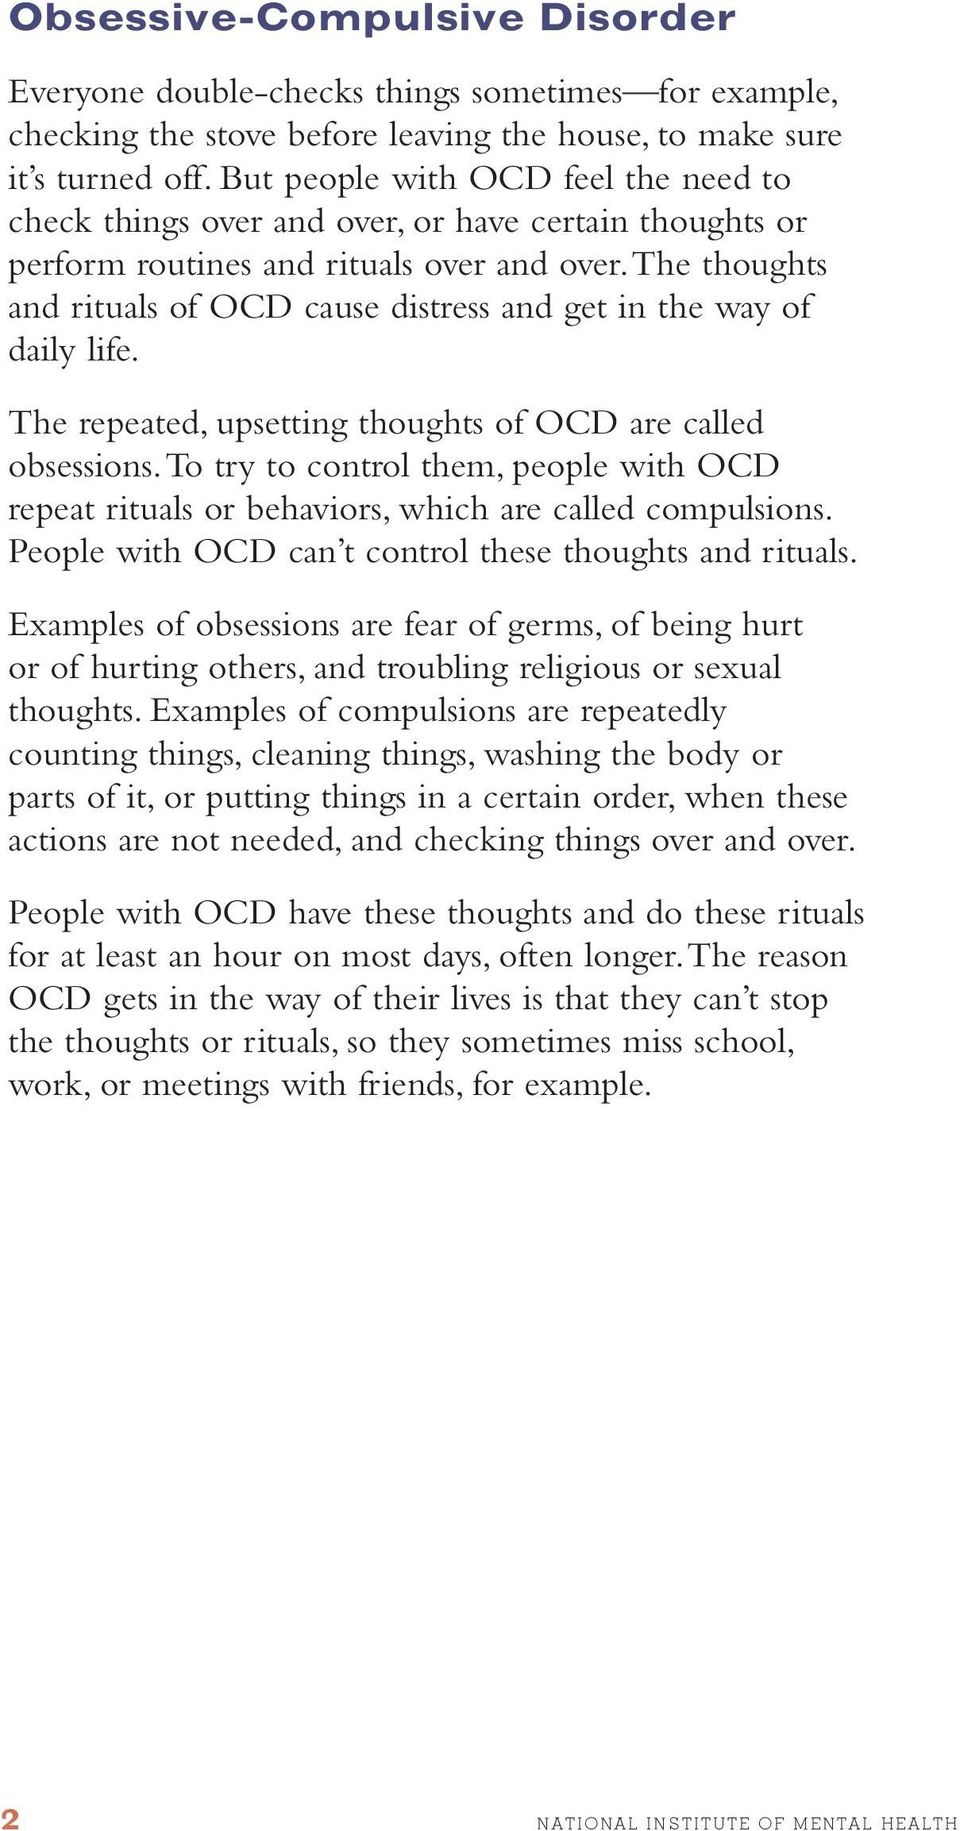 the thoughts and rituals of OCD cause distress and get in the way of daily life. The repeated, upsetting thoughts of OCD are called obsessions.